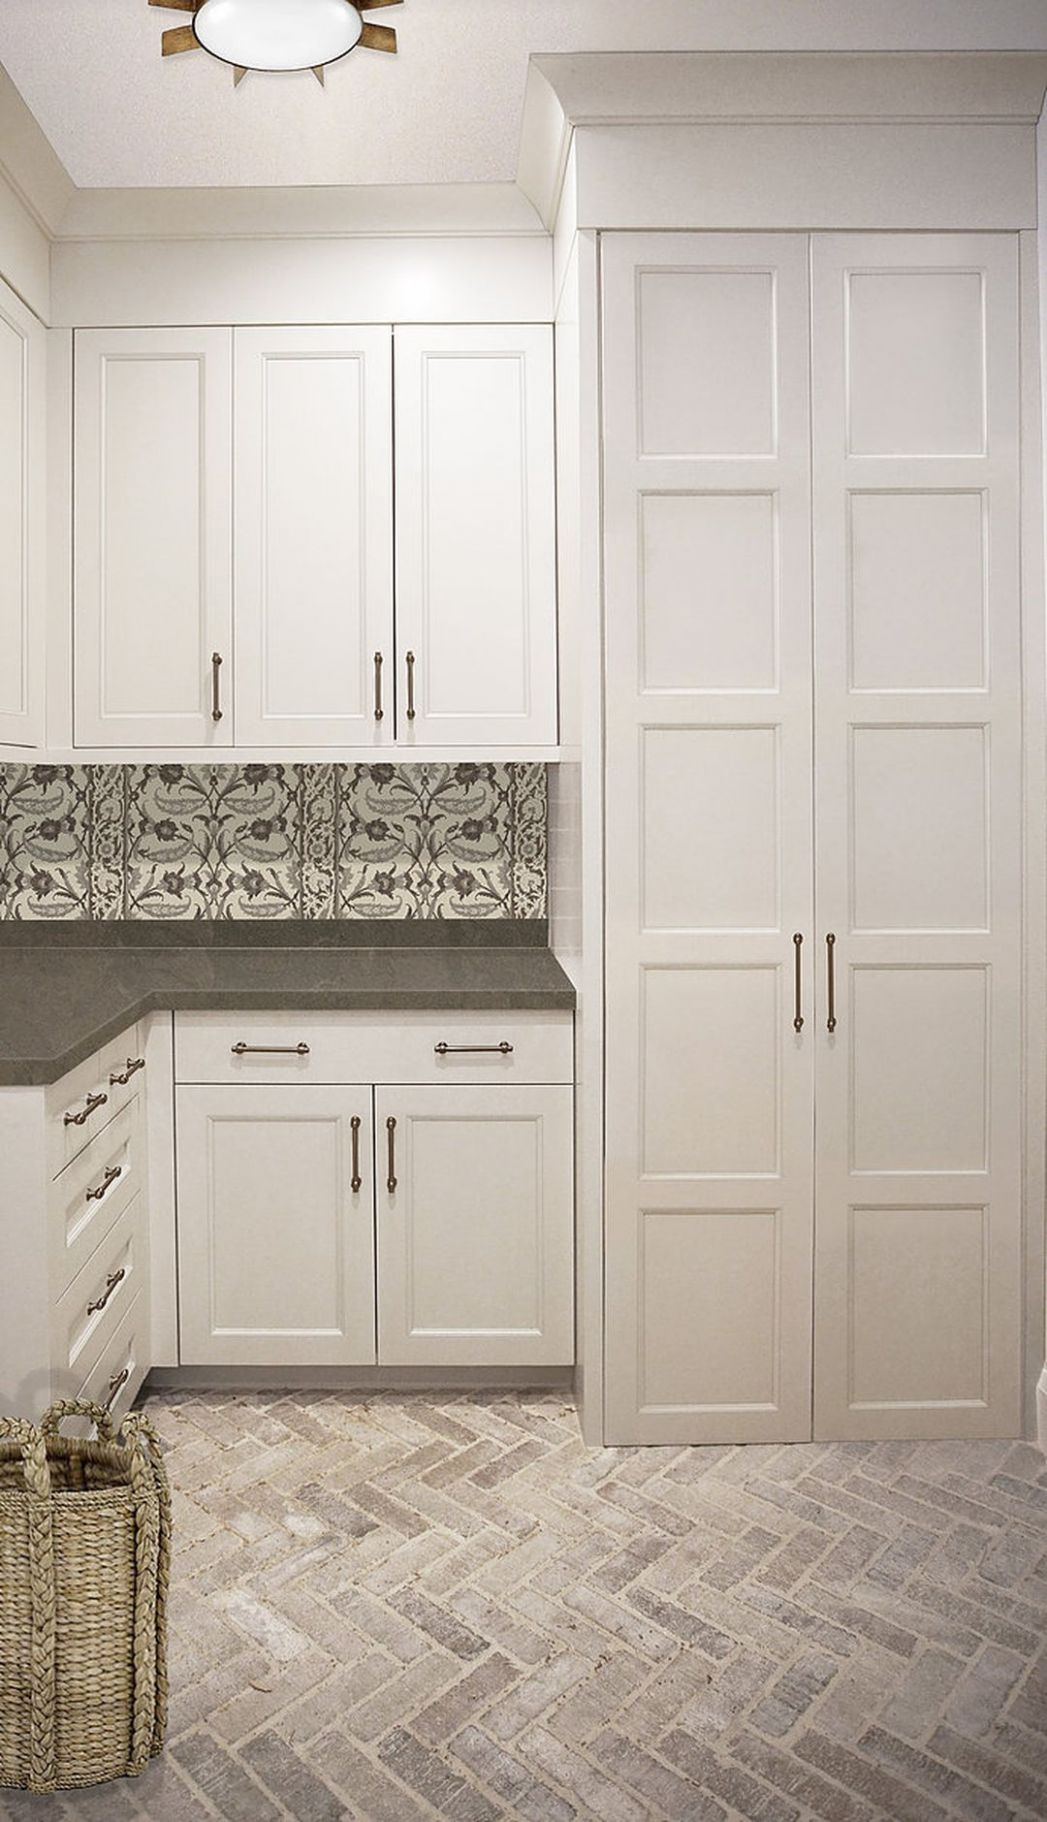 Beautiful Laundry Room Tile Design Ideas (10 | Laundry room tile ...